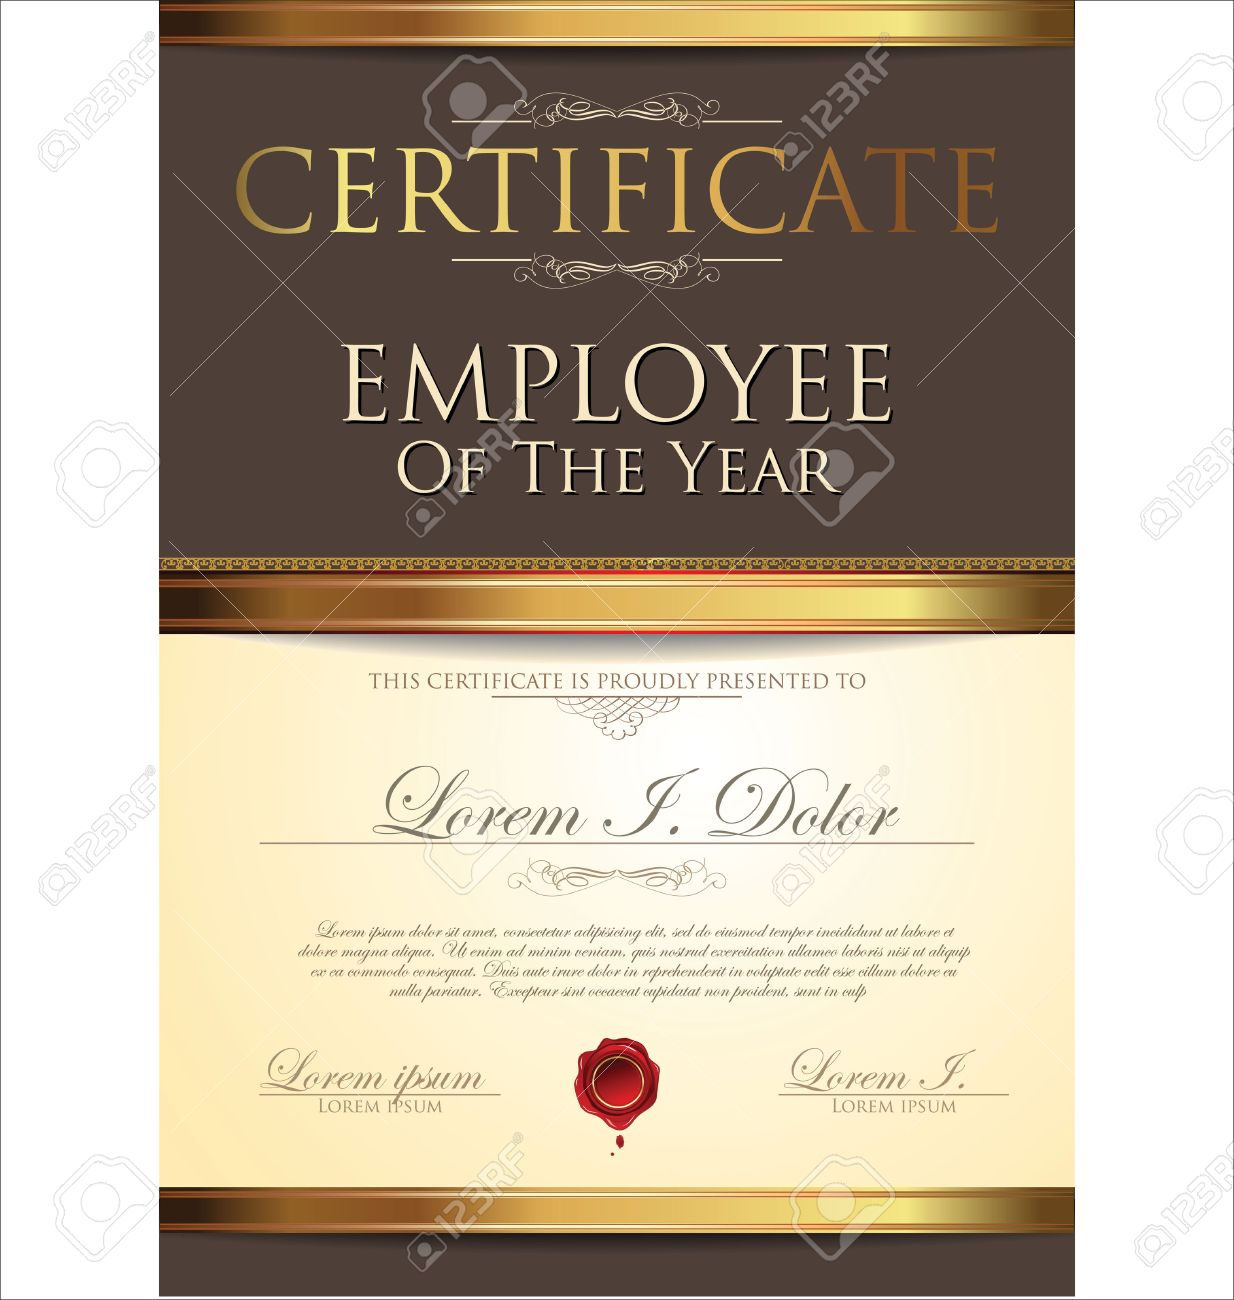 Award certificate stock photos royalty free award certificate certificate template employee of the year 1betcityfo Images